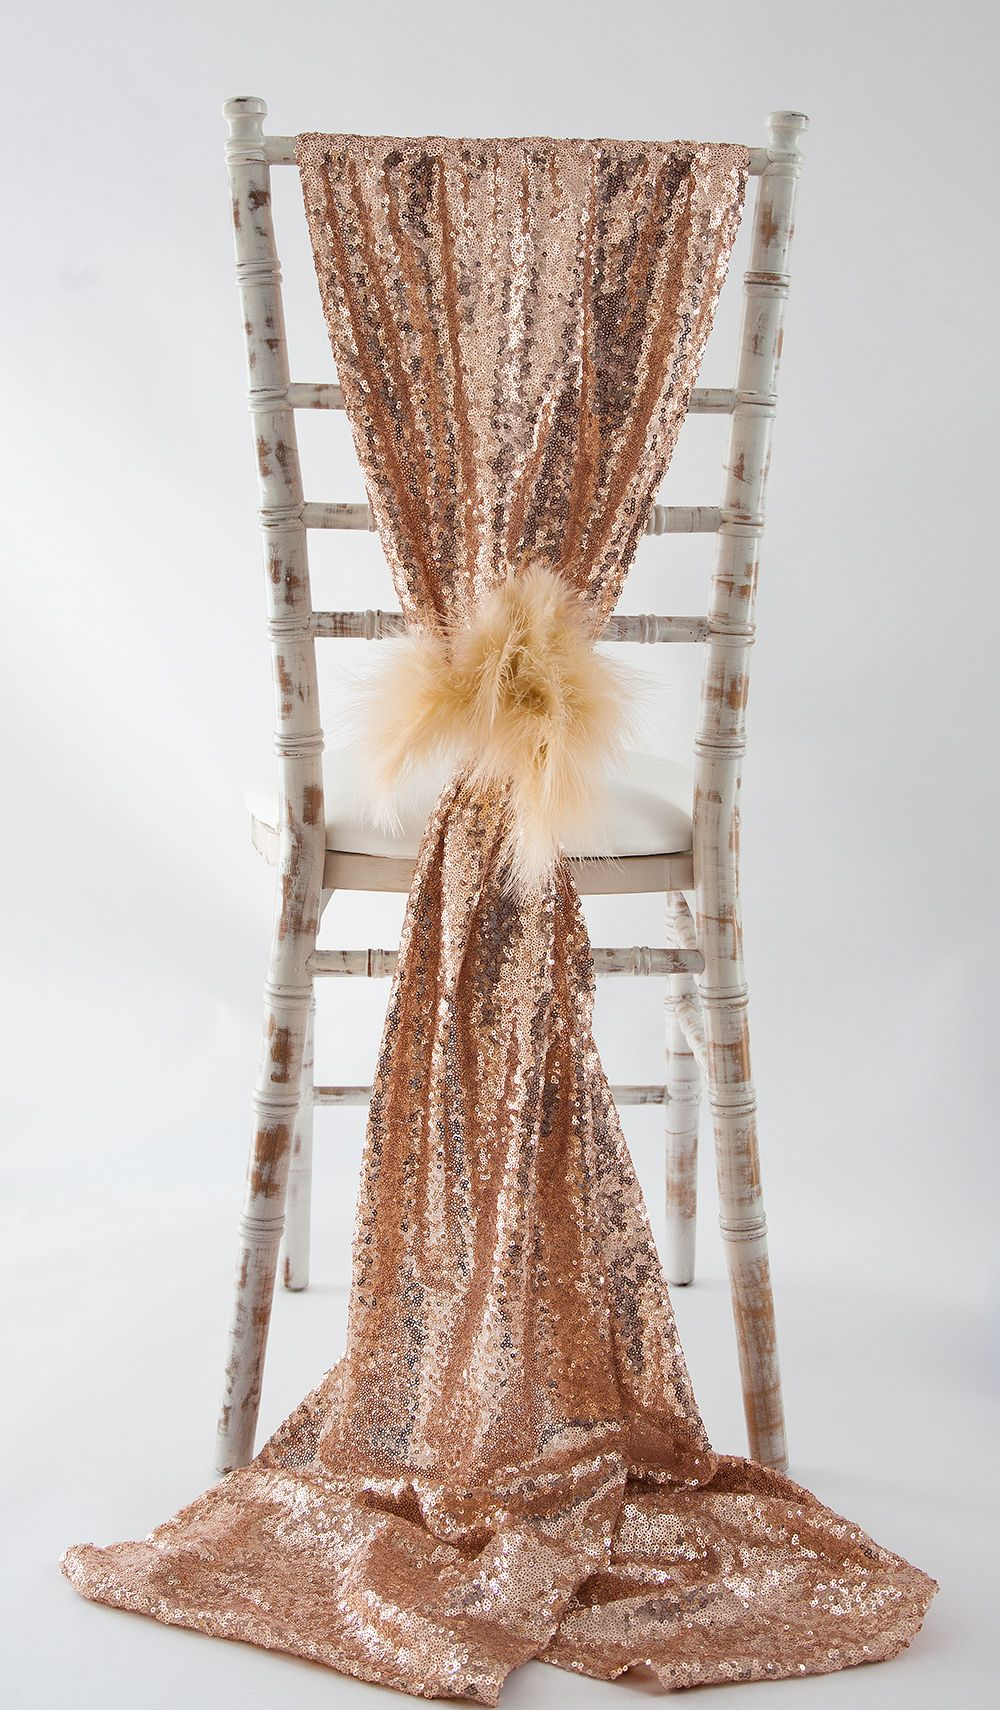 sequin chair covers uk that lifts you up dusky pink sashes pulled together with champagne feathers both available in other shades at chaircoverdepot